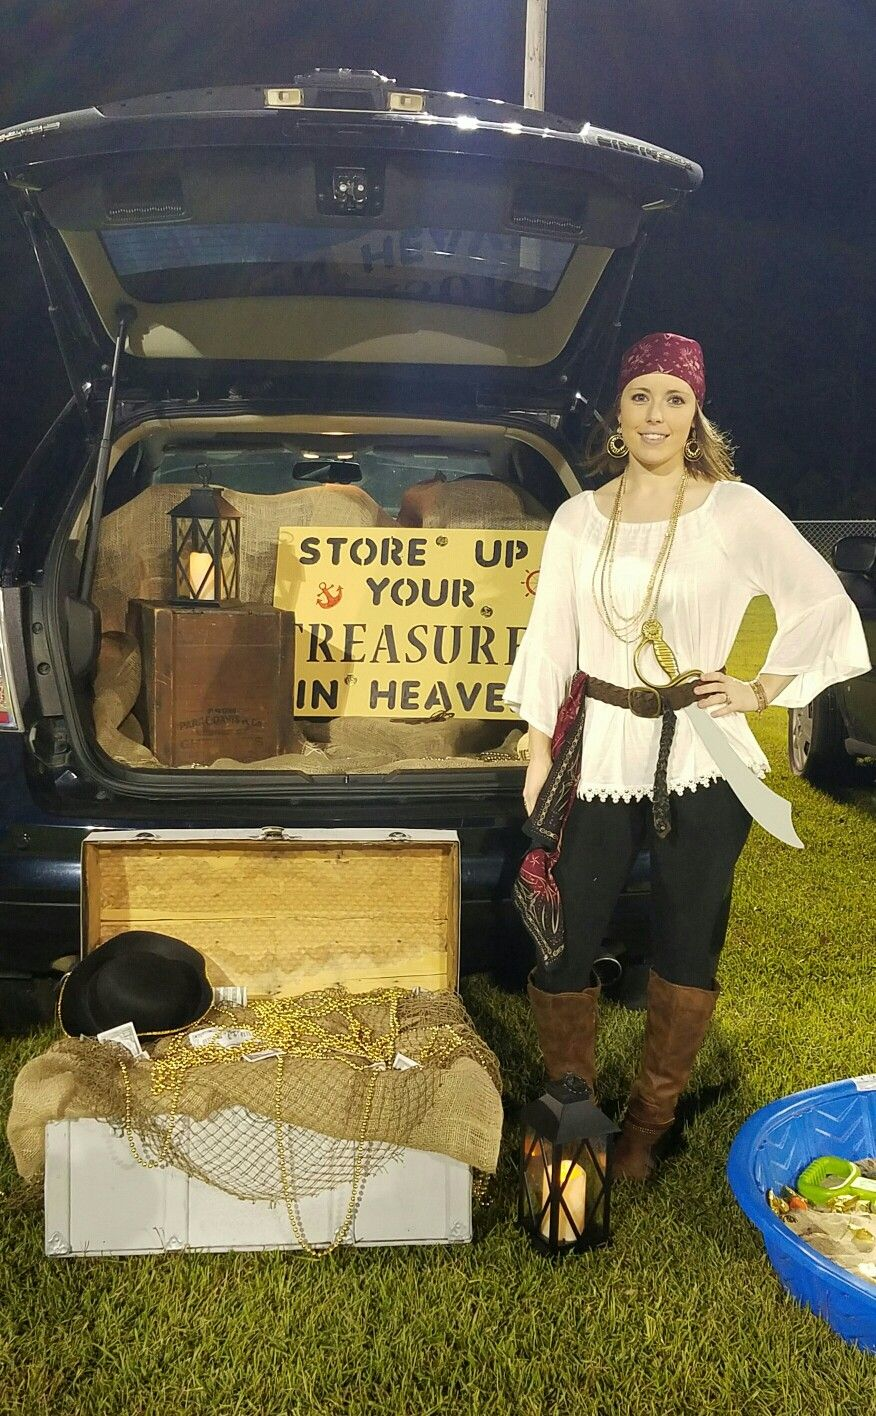 DIY Pirate Costume Pirate Themed Church Trunk or Treat (christian thanksgiving treats) #diypiratecostumeforkids